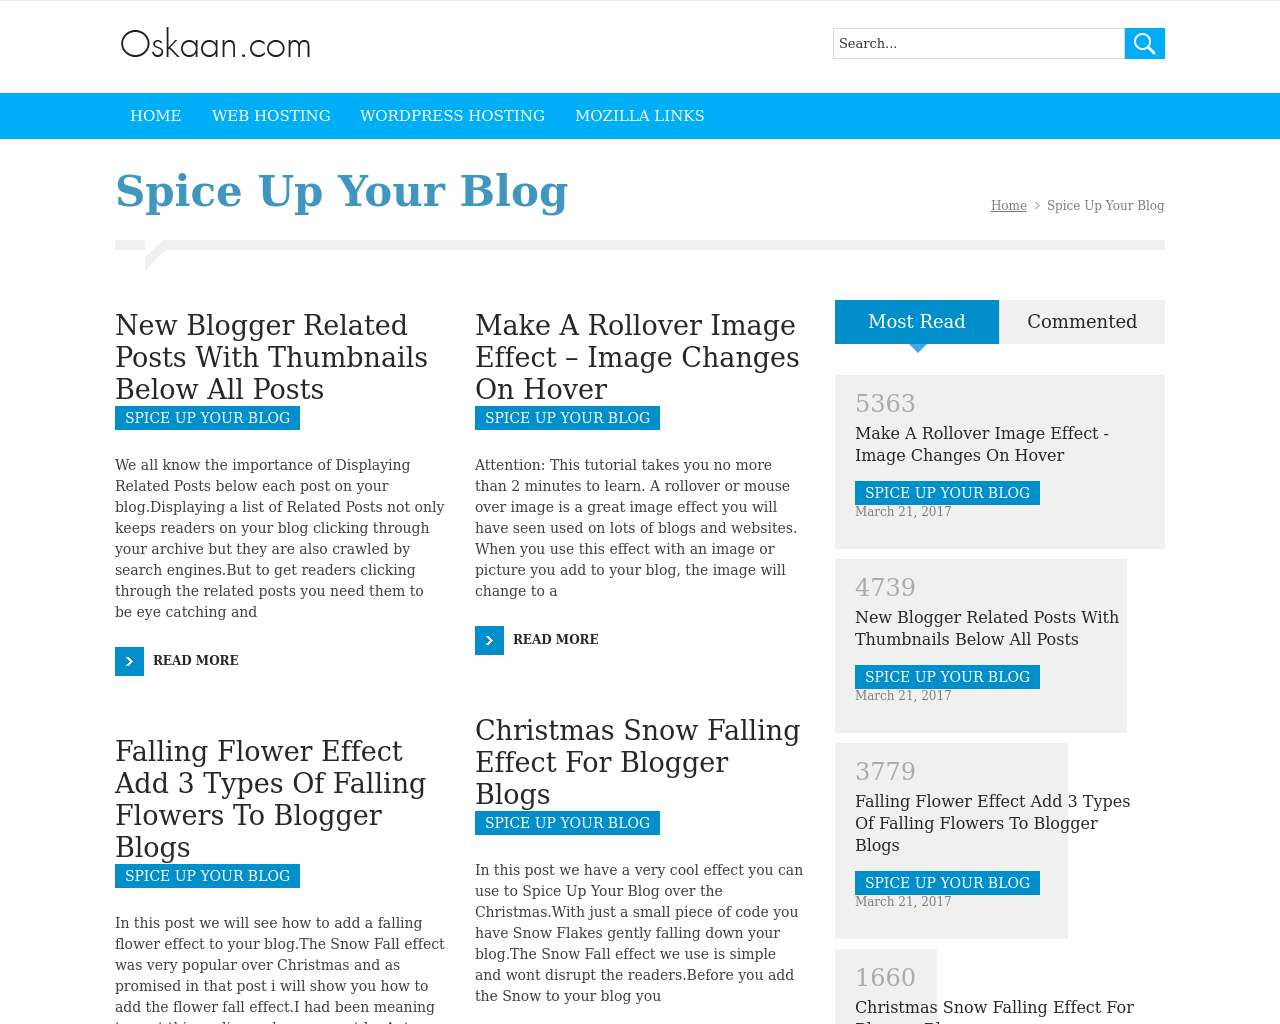 Spice-Up-Your-Blog-Advertising-Reviews-Pricing